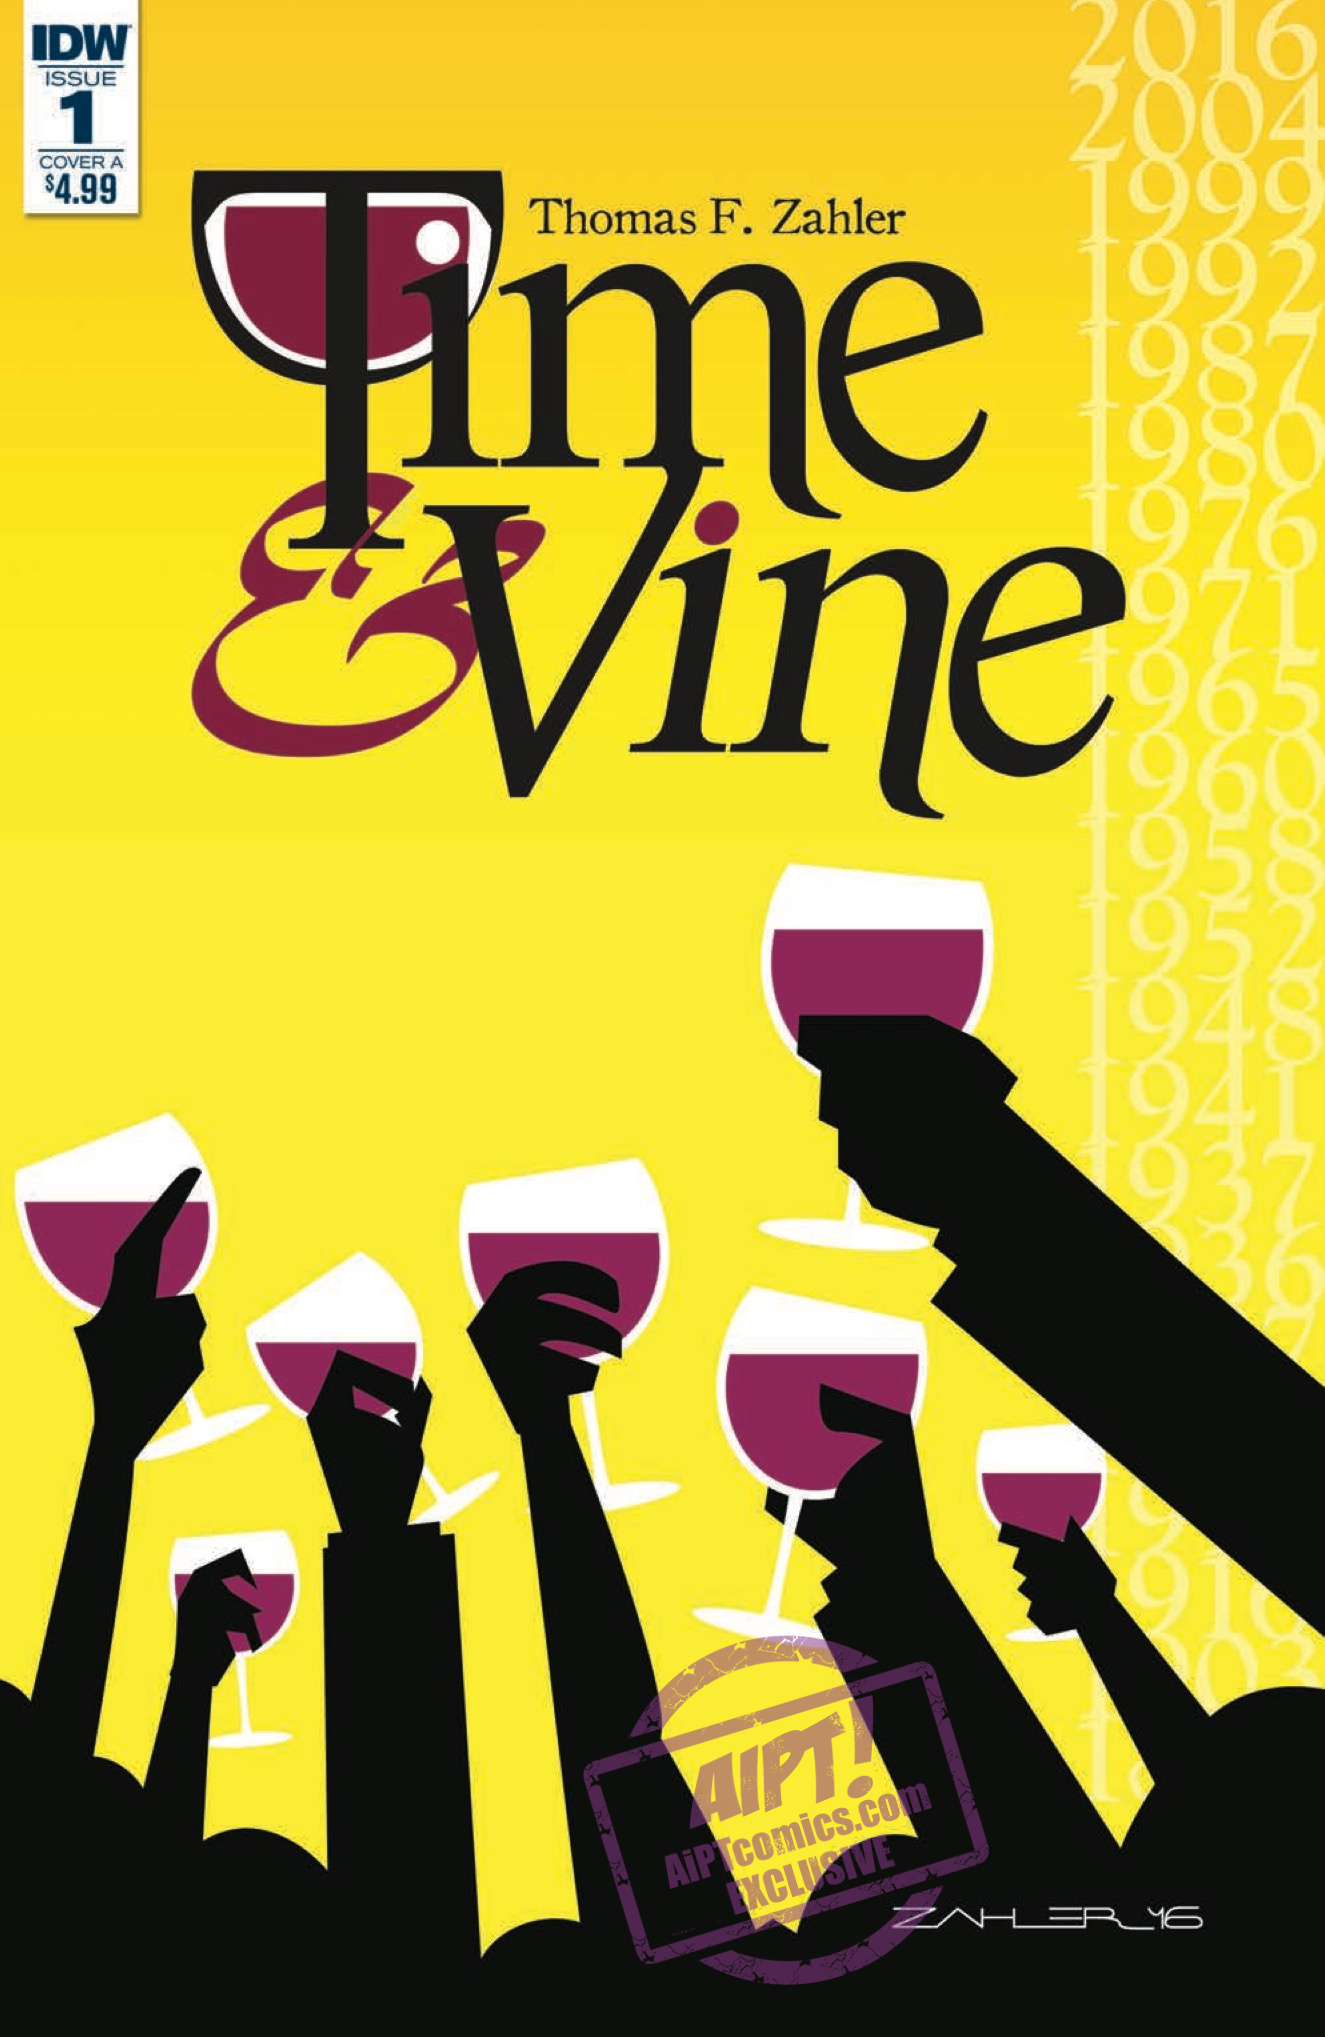 [EXCLUSIVE] IDW Preview: Time & Vine #1